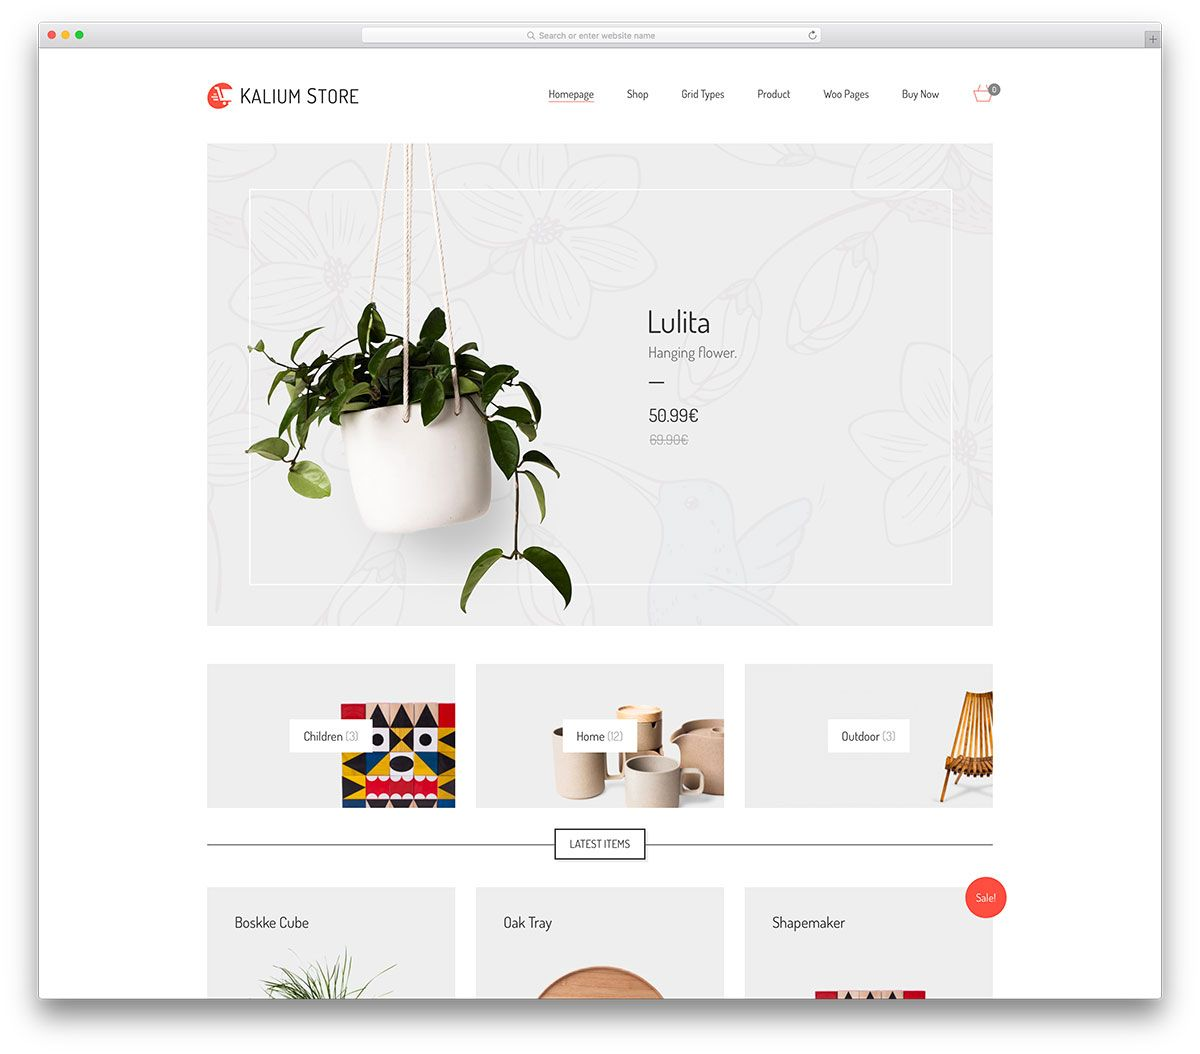 Clean ecommerce website design